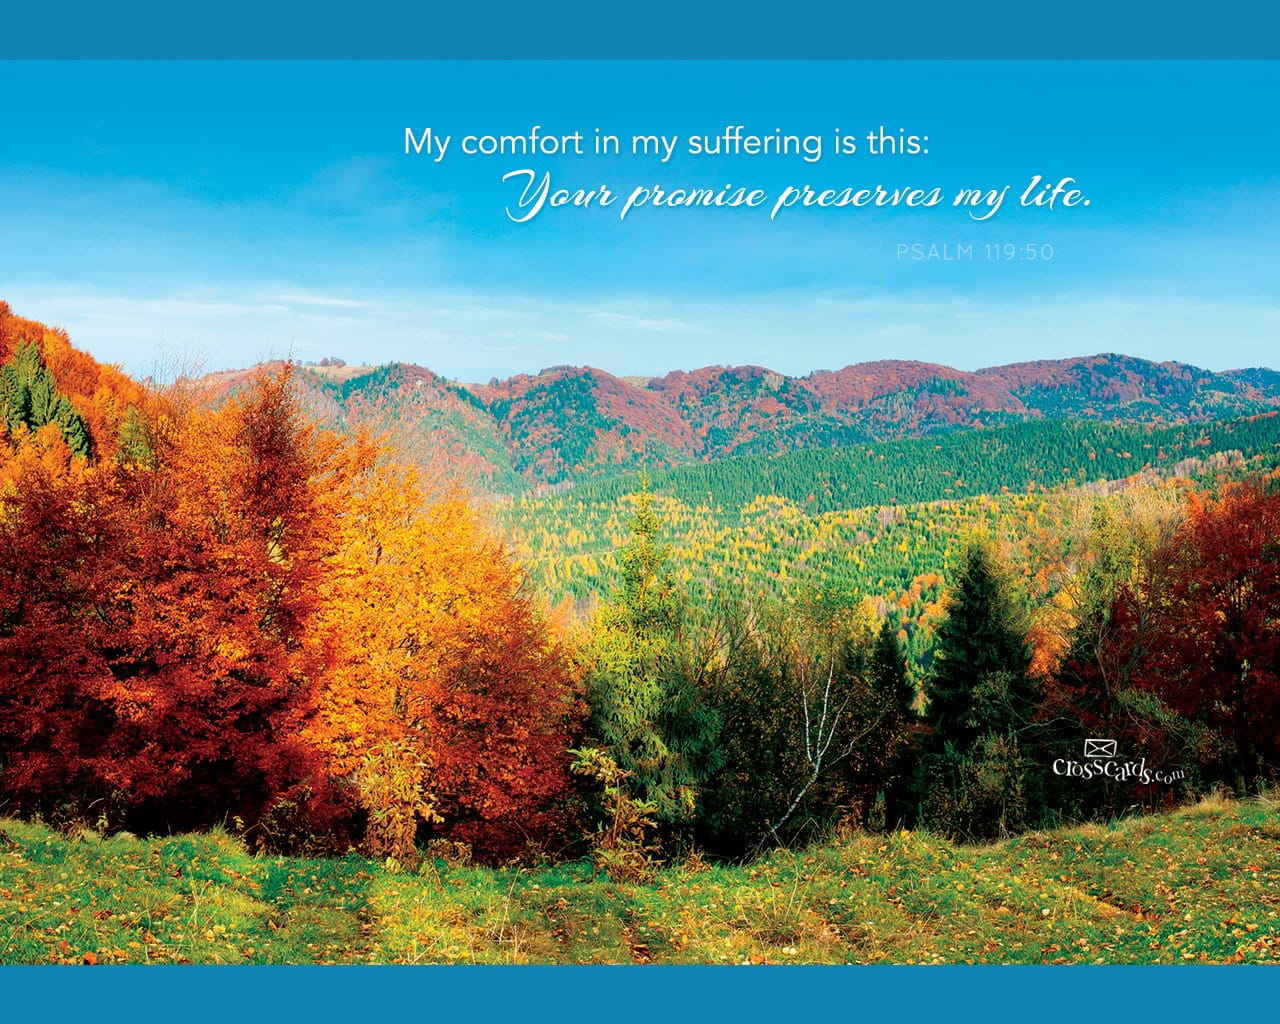 Free Fall Scripture Wallpaper Psalm 119 50 Bible Verses And Scripture Wallpaper For